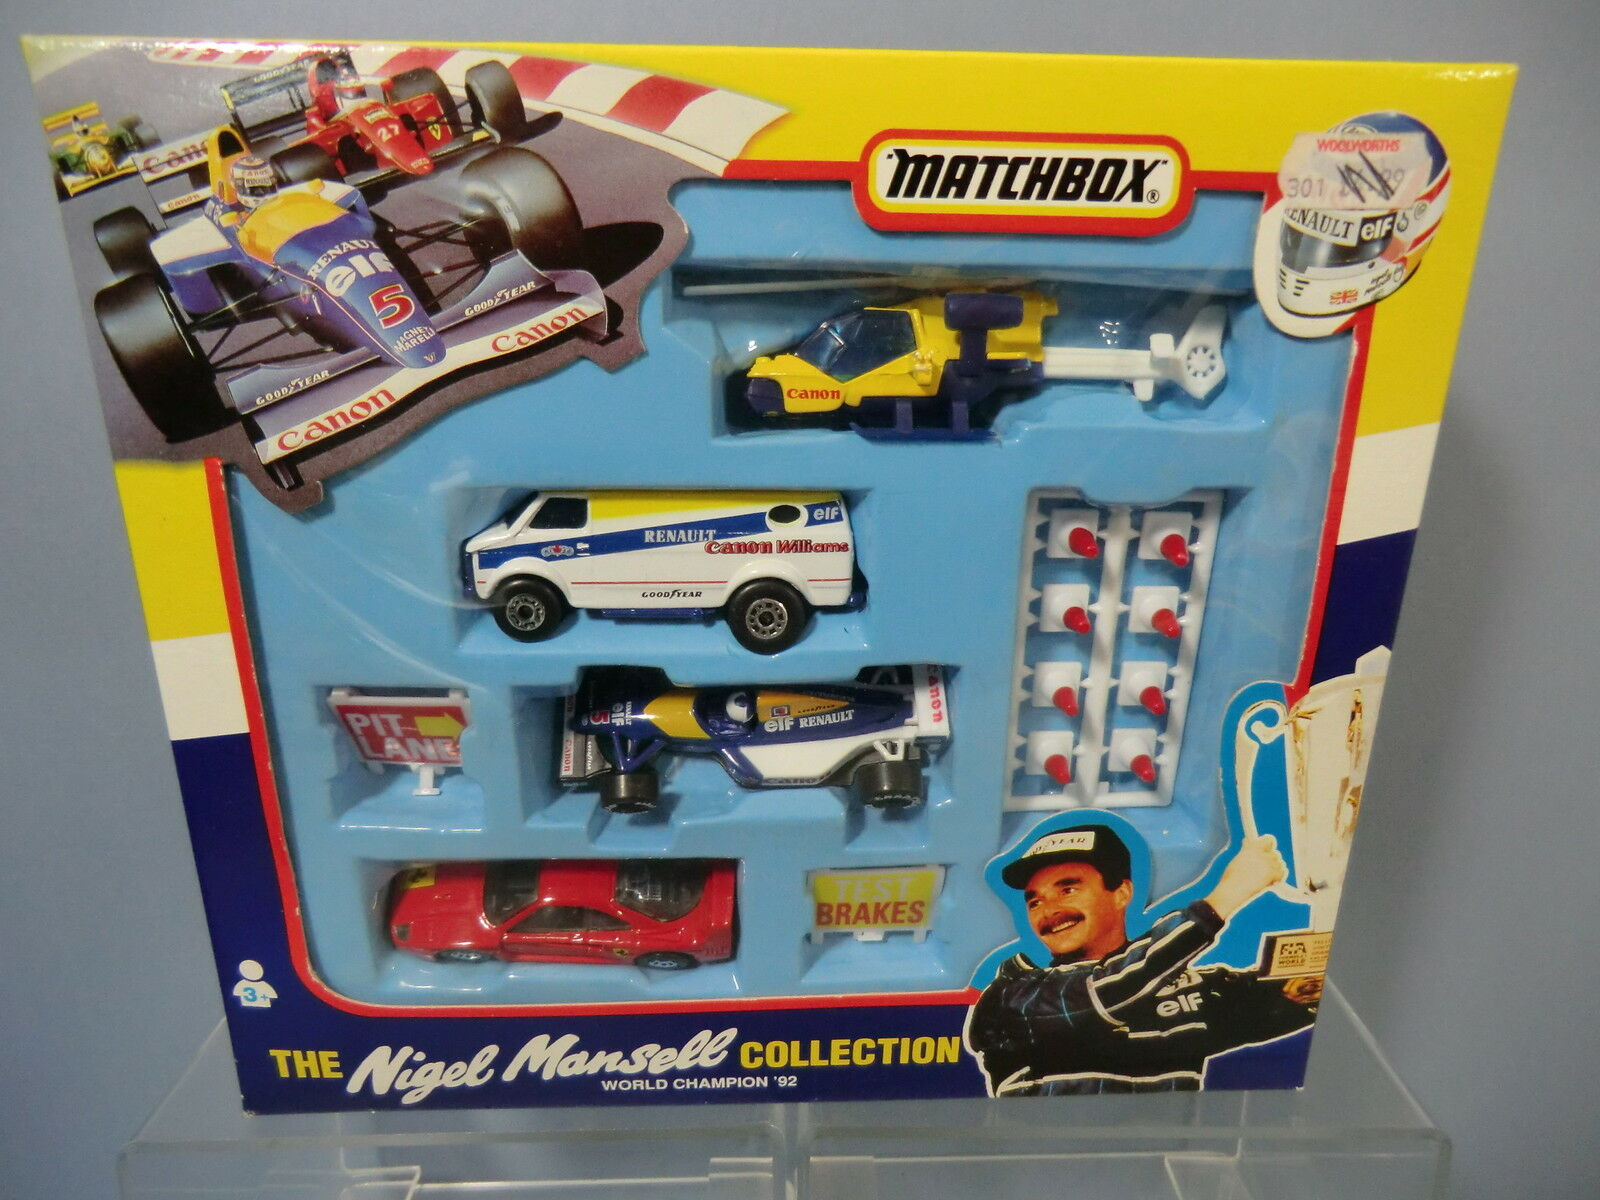 MATCHBOX MODEL No38820  NIGEL MANSELL COLLECTION  WORLD CHAMPION 92 GIFT SET MIB